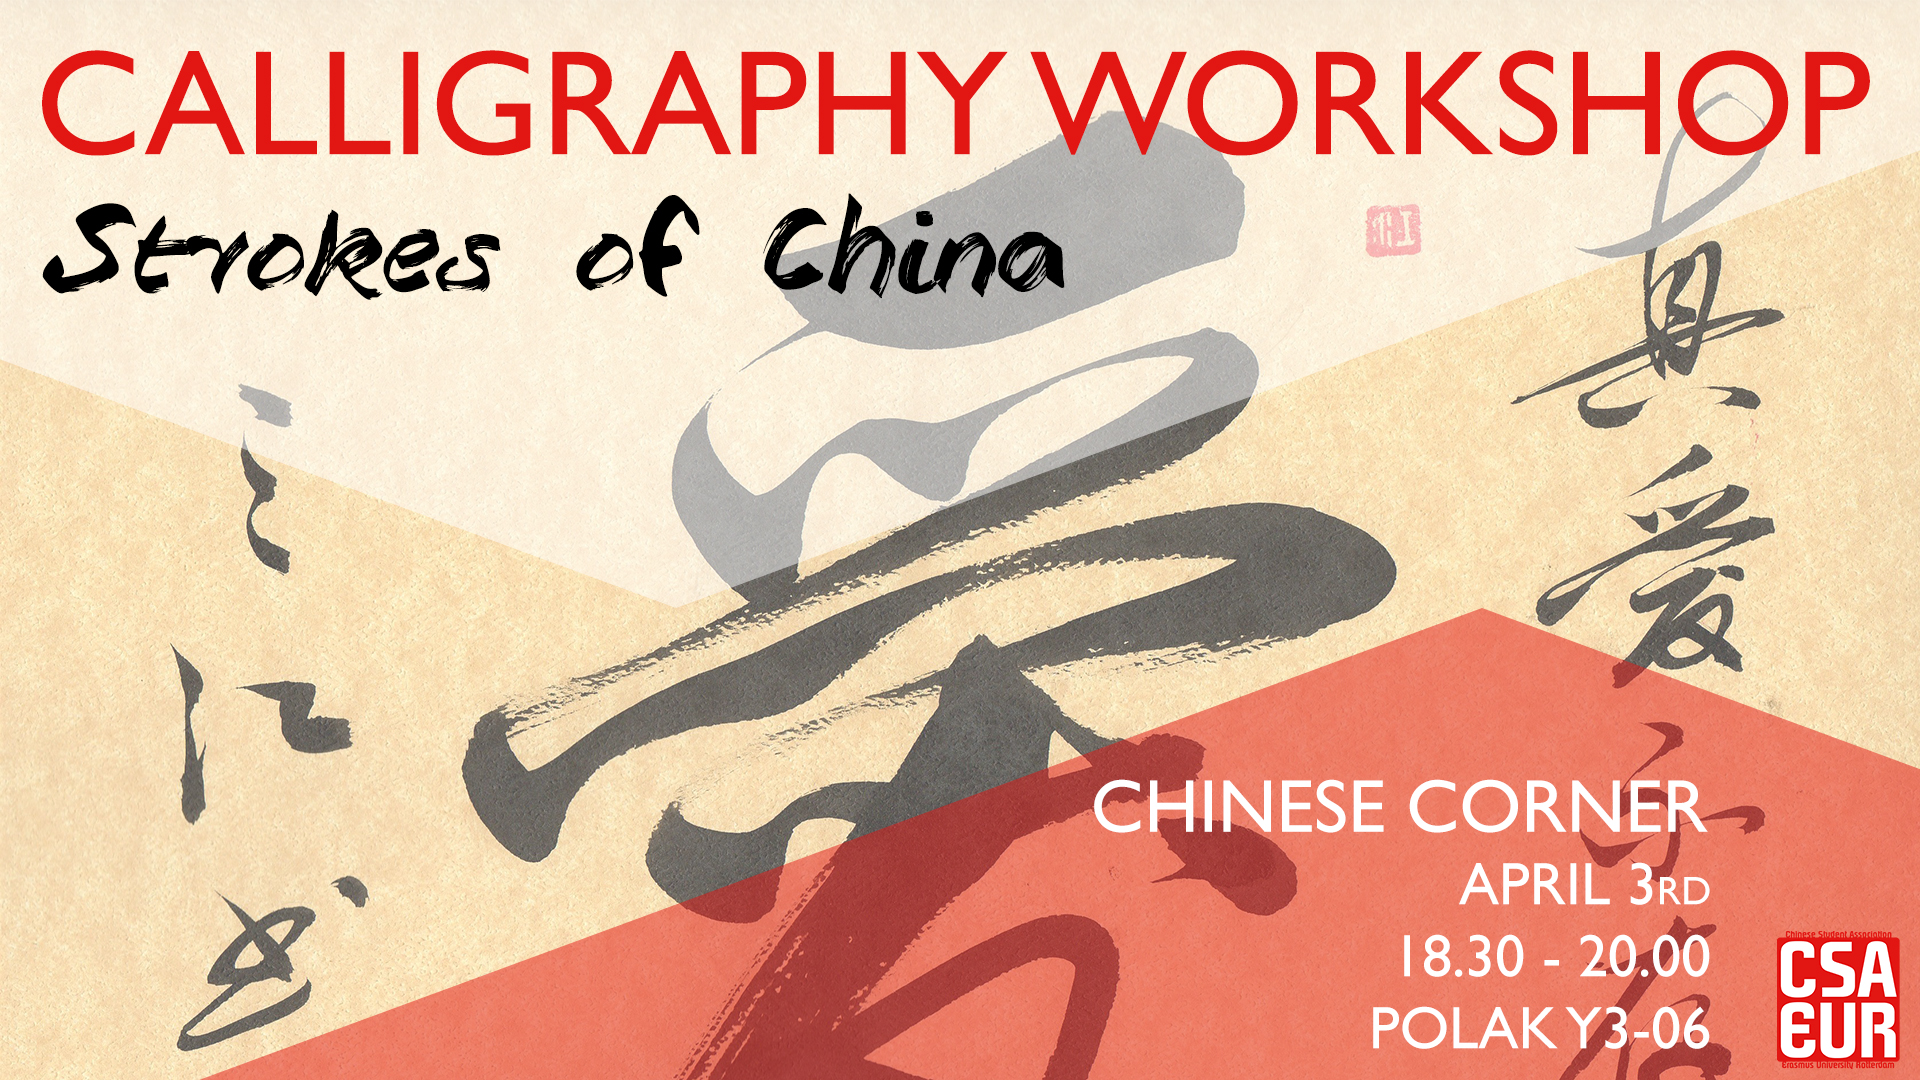 Calligraphy Workshop The Chinese Student Association